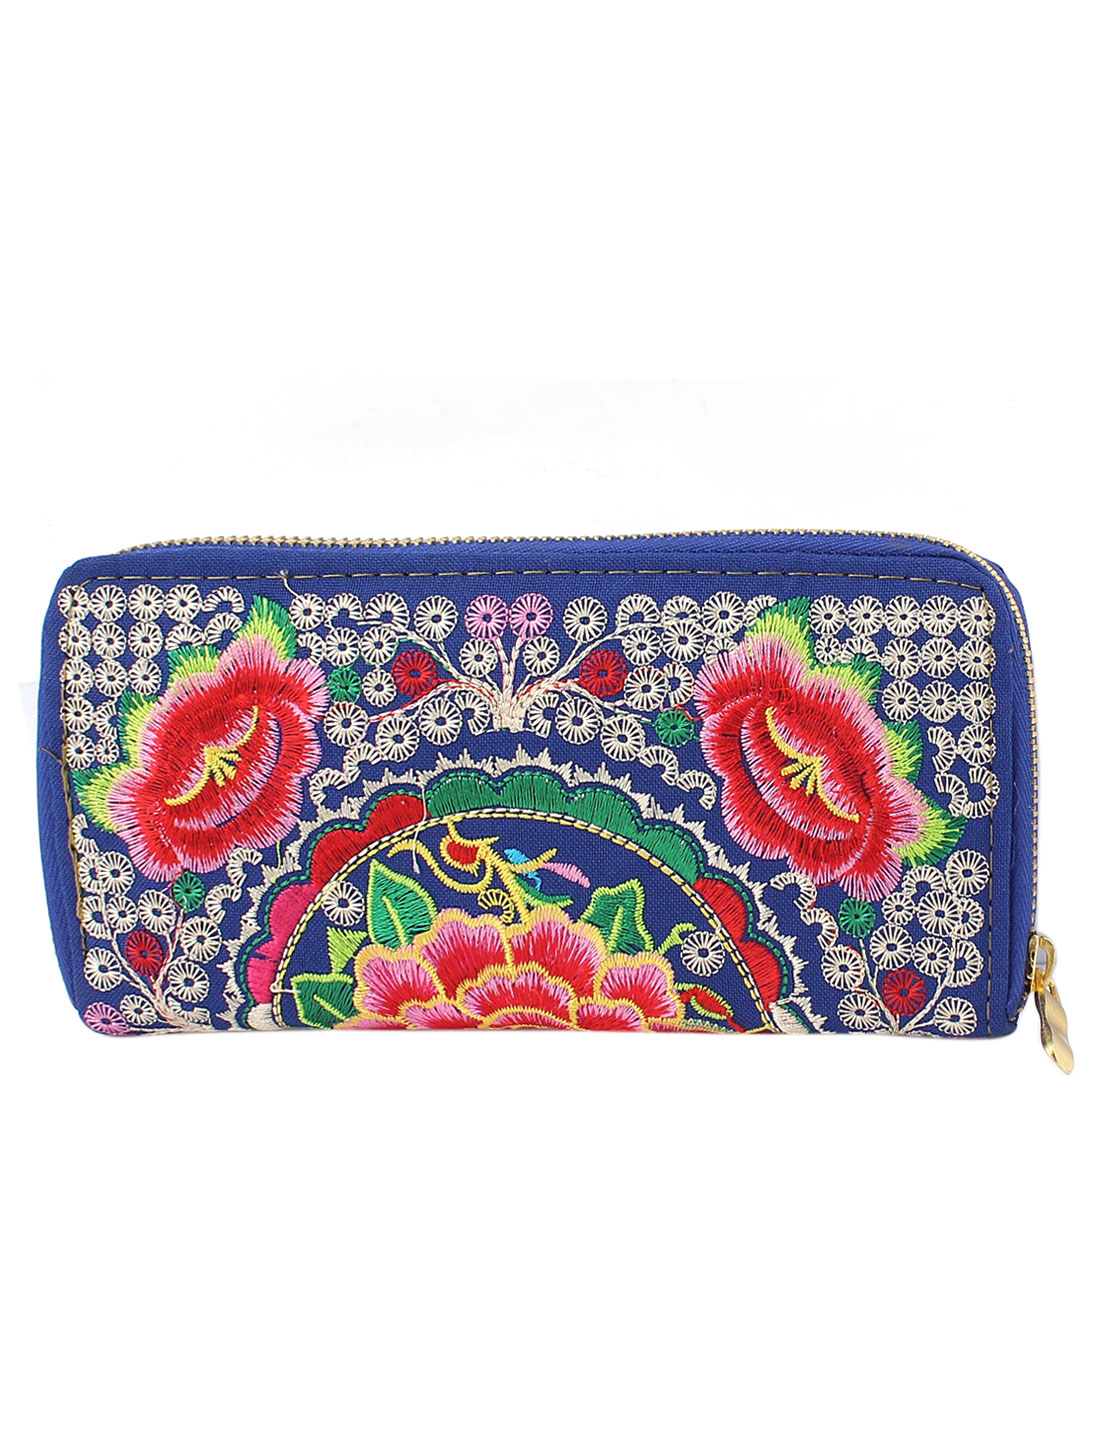 Ladies Embroidered Floral Zipped Purse Wallet Phone Change Coin Bag Clutch